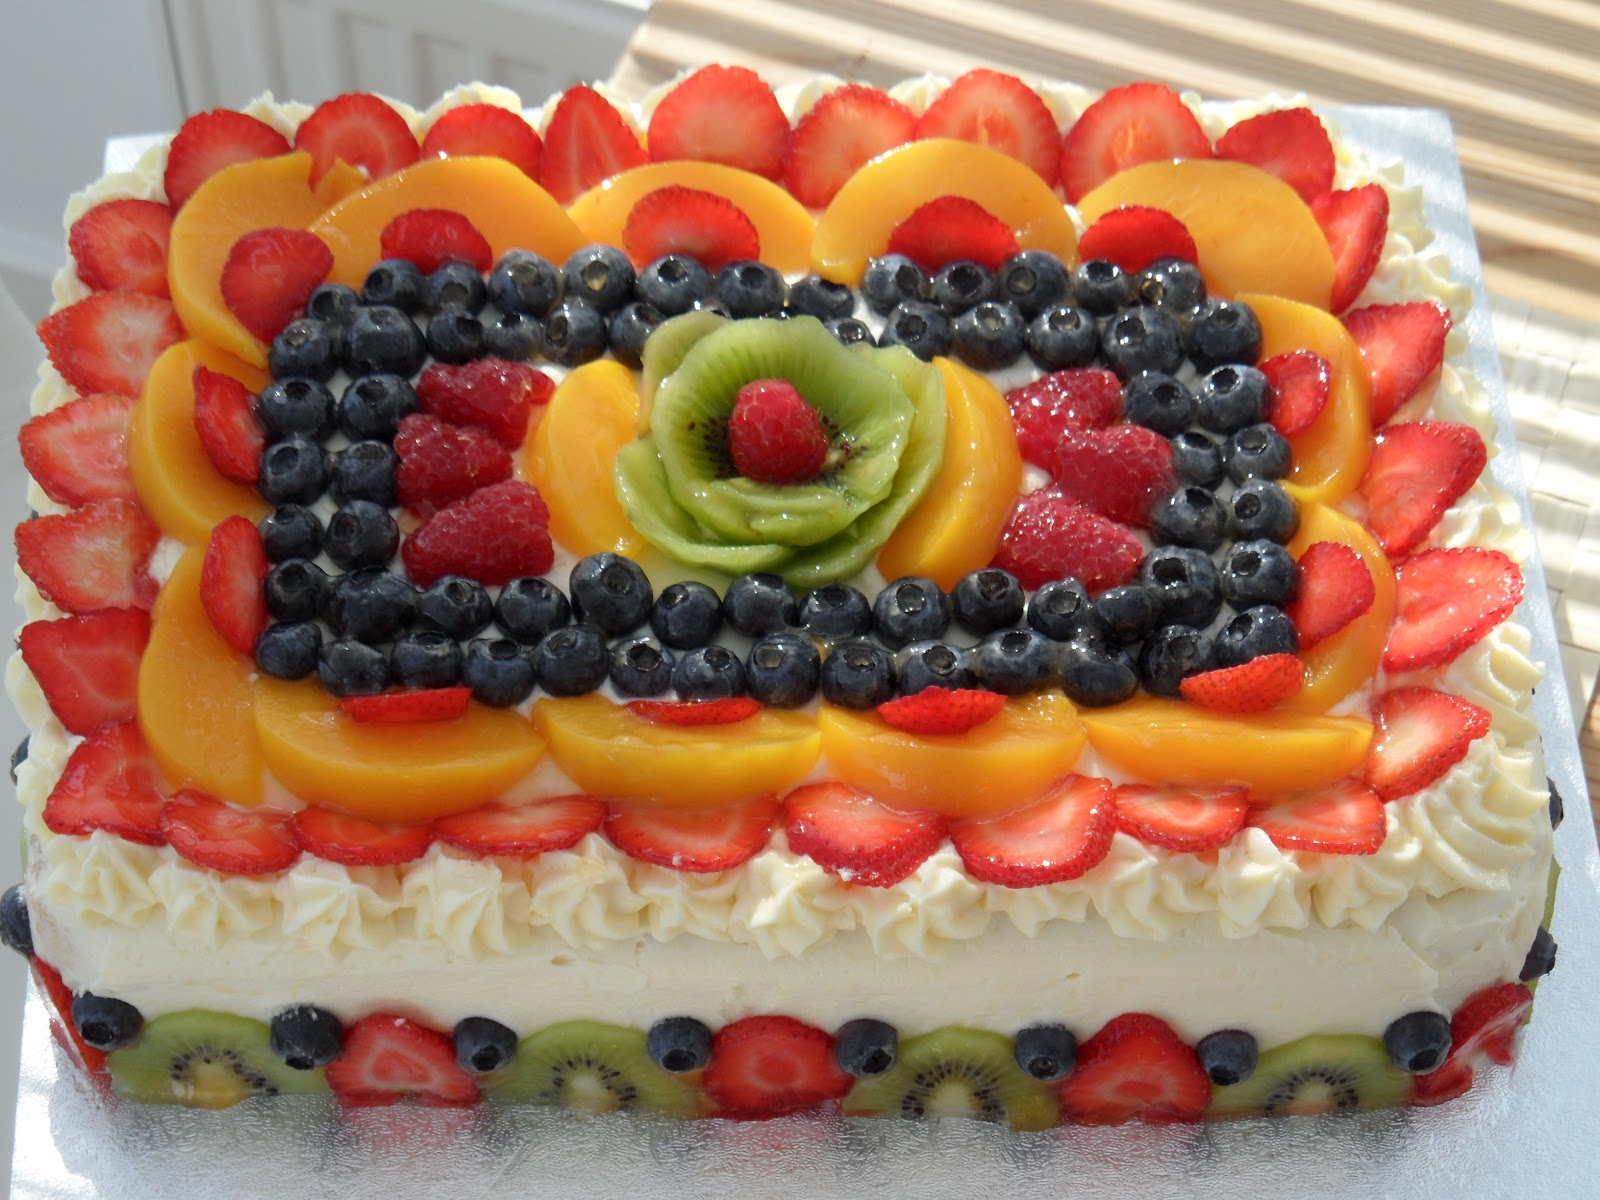 fruits food and cake - photo #41